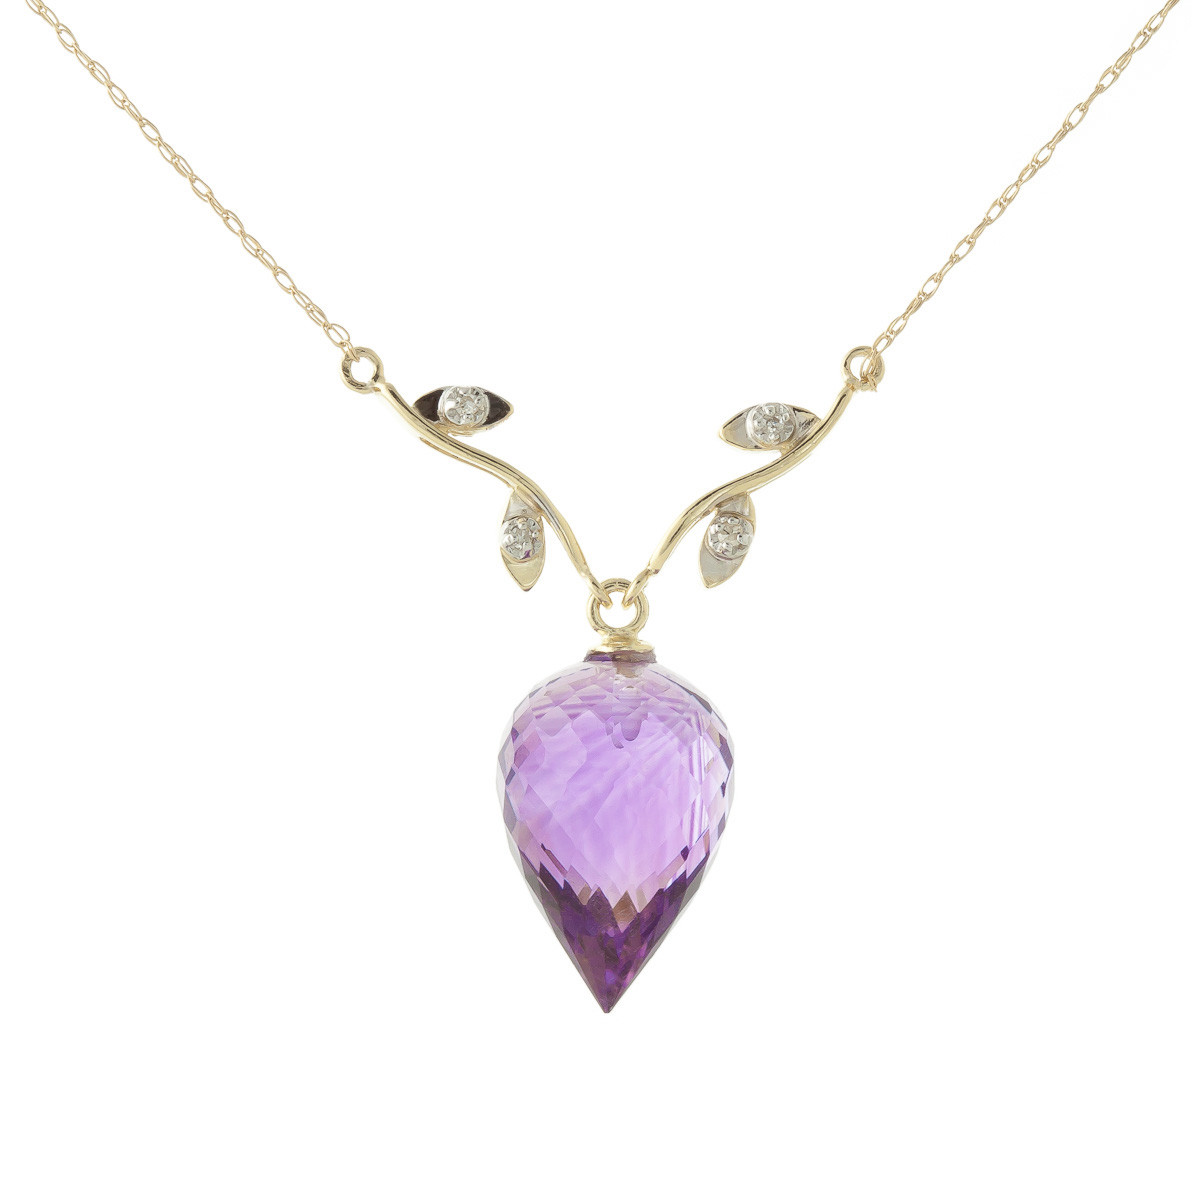 Pointed Briolette Cut Amethyst Pendant Necklace 9.52 ctw in 9ct Gold